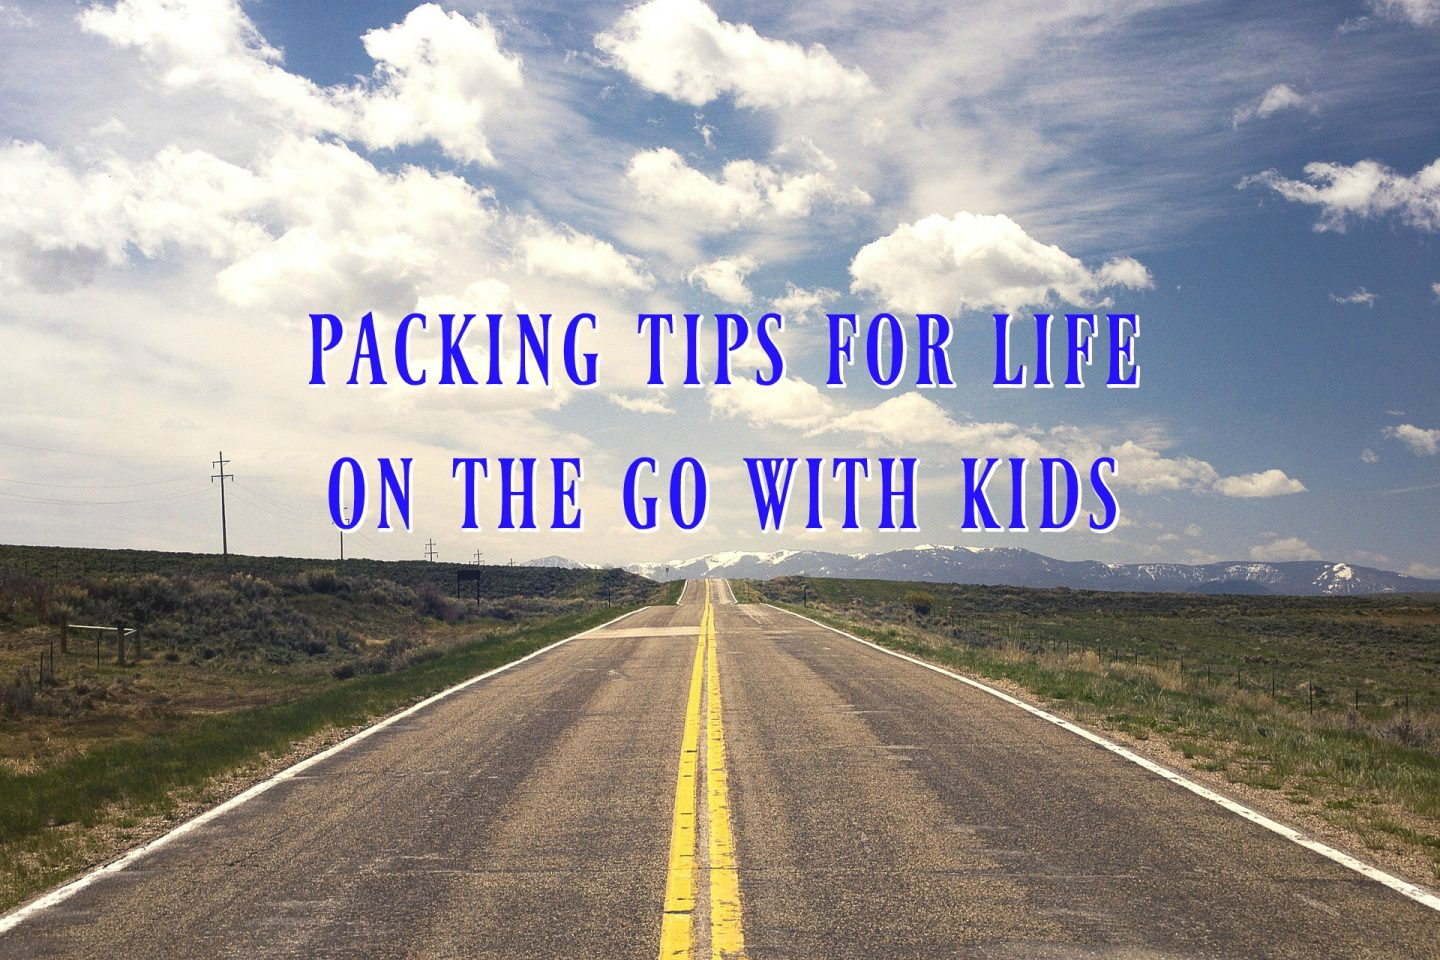 My packing tips for life on the go with kids